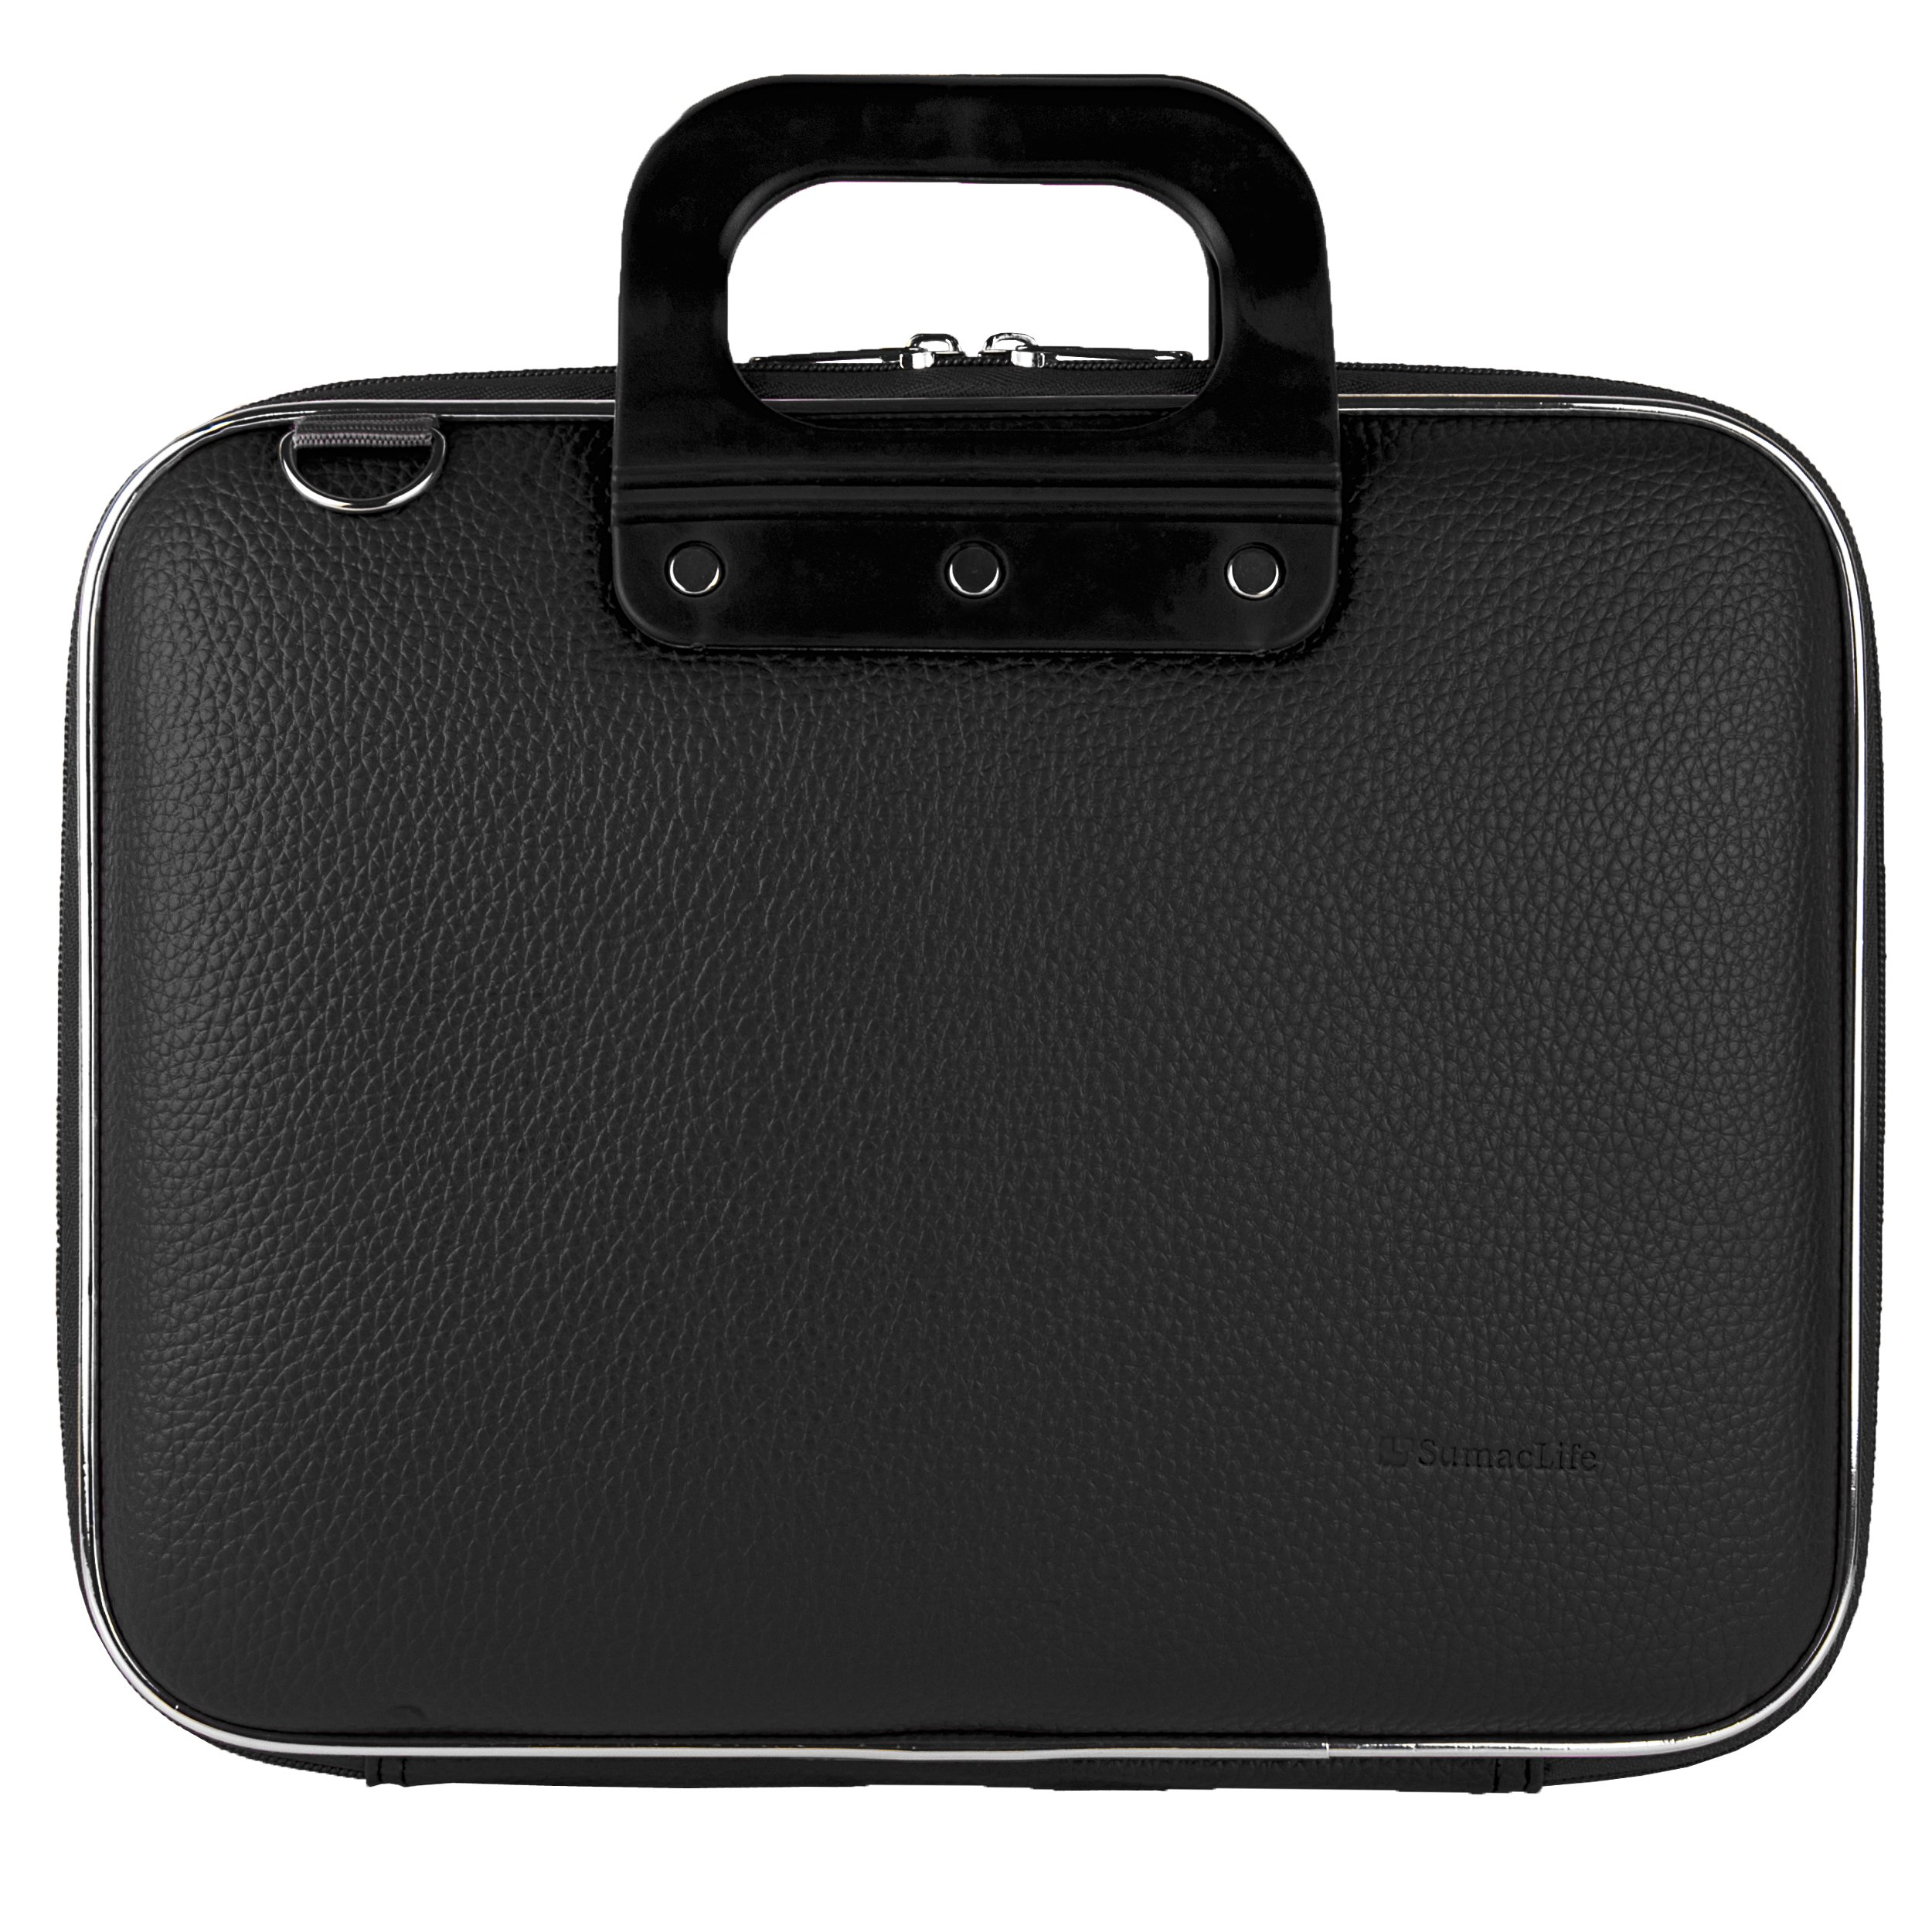 Black Cady Executive Leather Hard Cube Carrying Case with Shoulder Strap Barnes & Noble NOOK HD+ 9 Inch Touch Screen Android Table